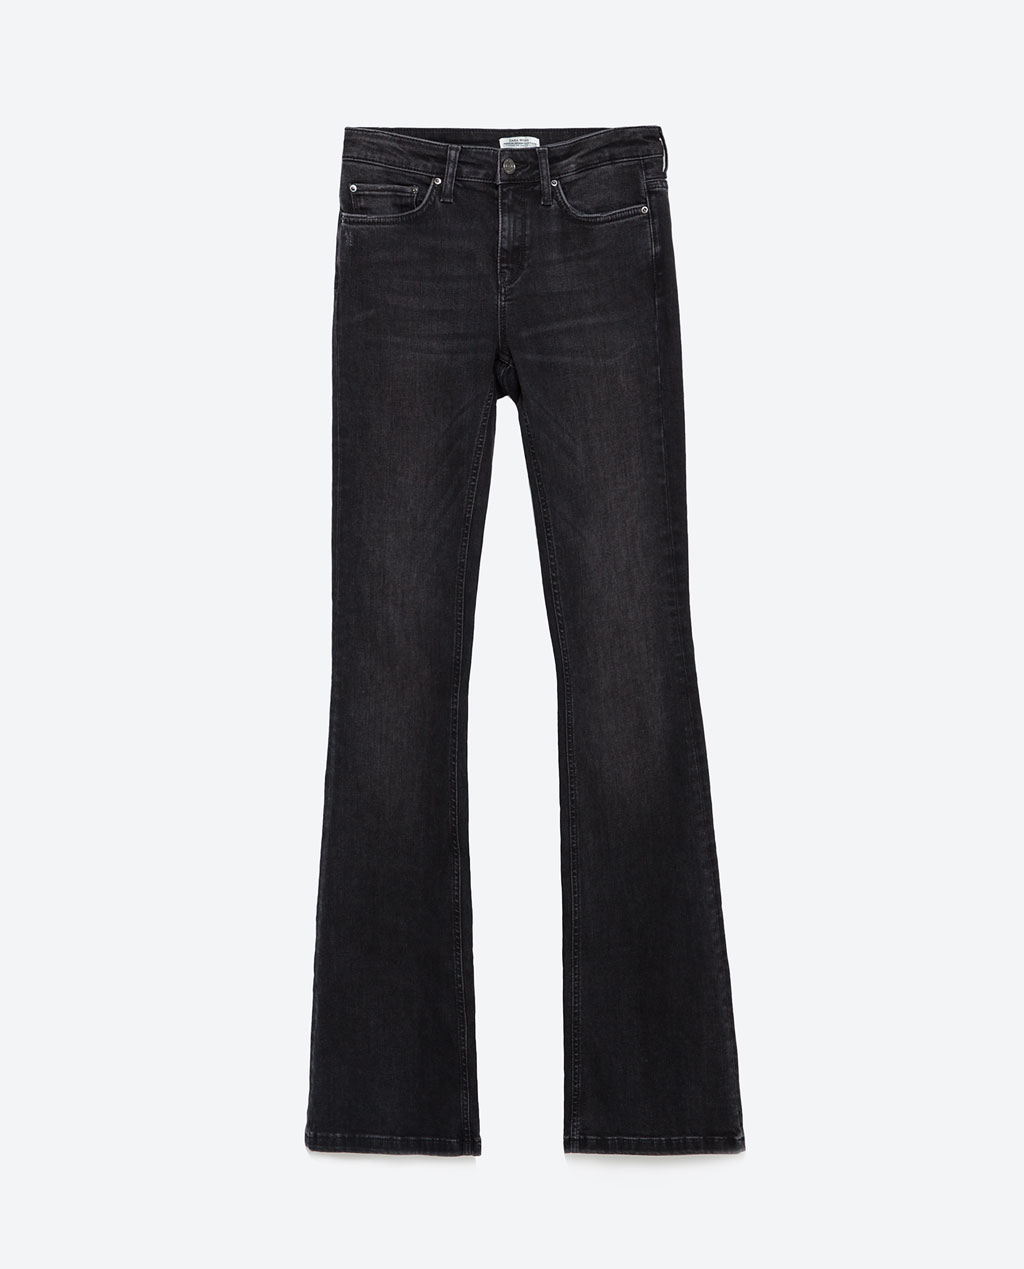 Fashion_Shopping_Herbst_Flare Jeans